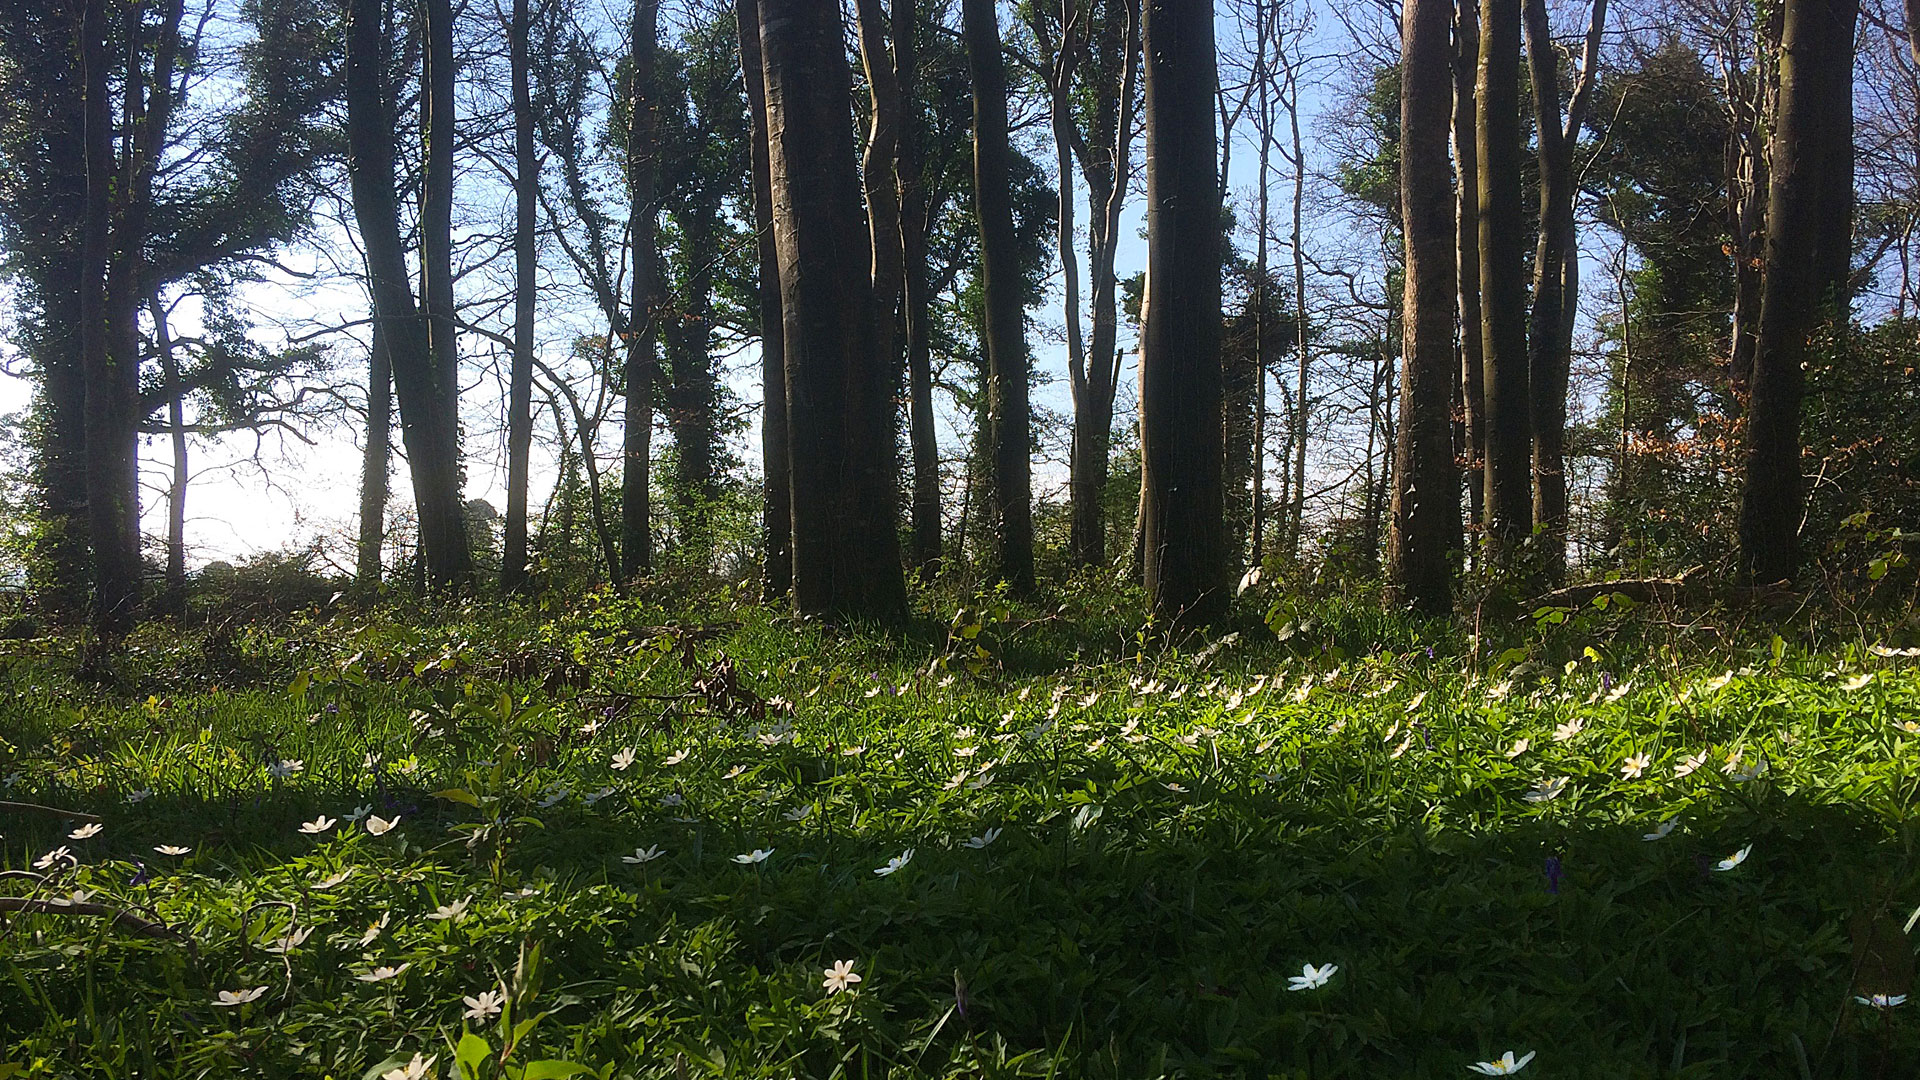 Capponellan Wood Durrow – April 8th 2017